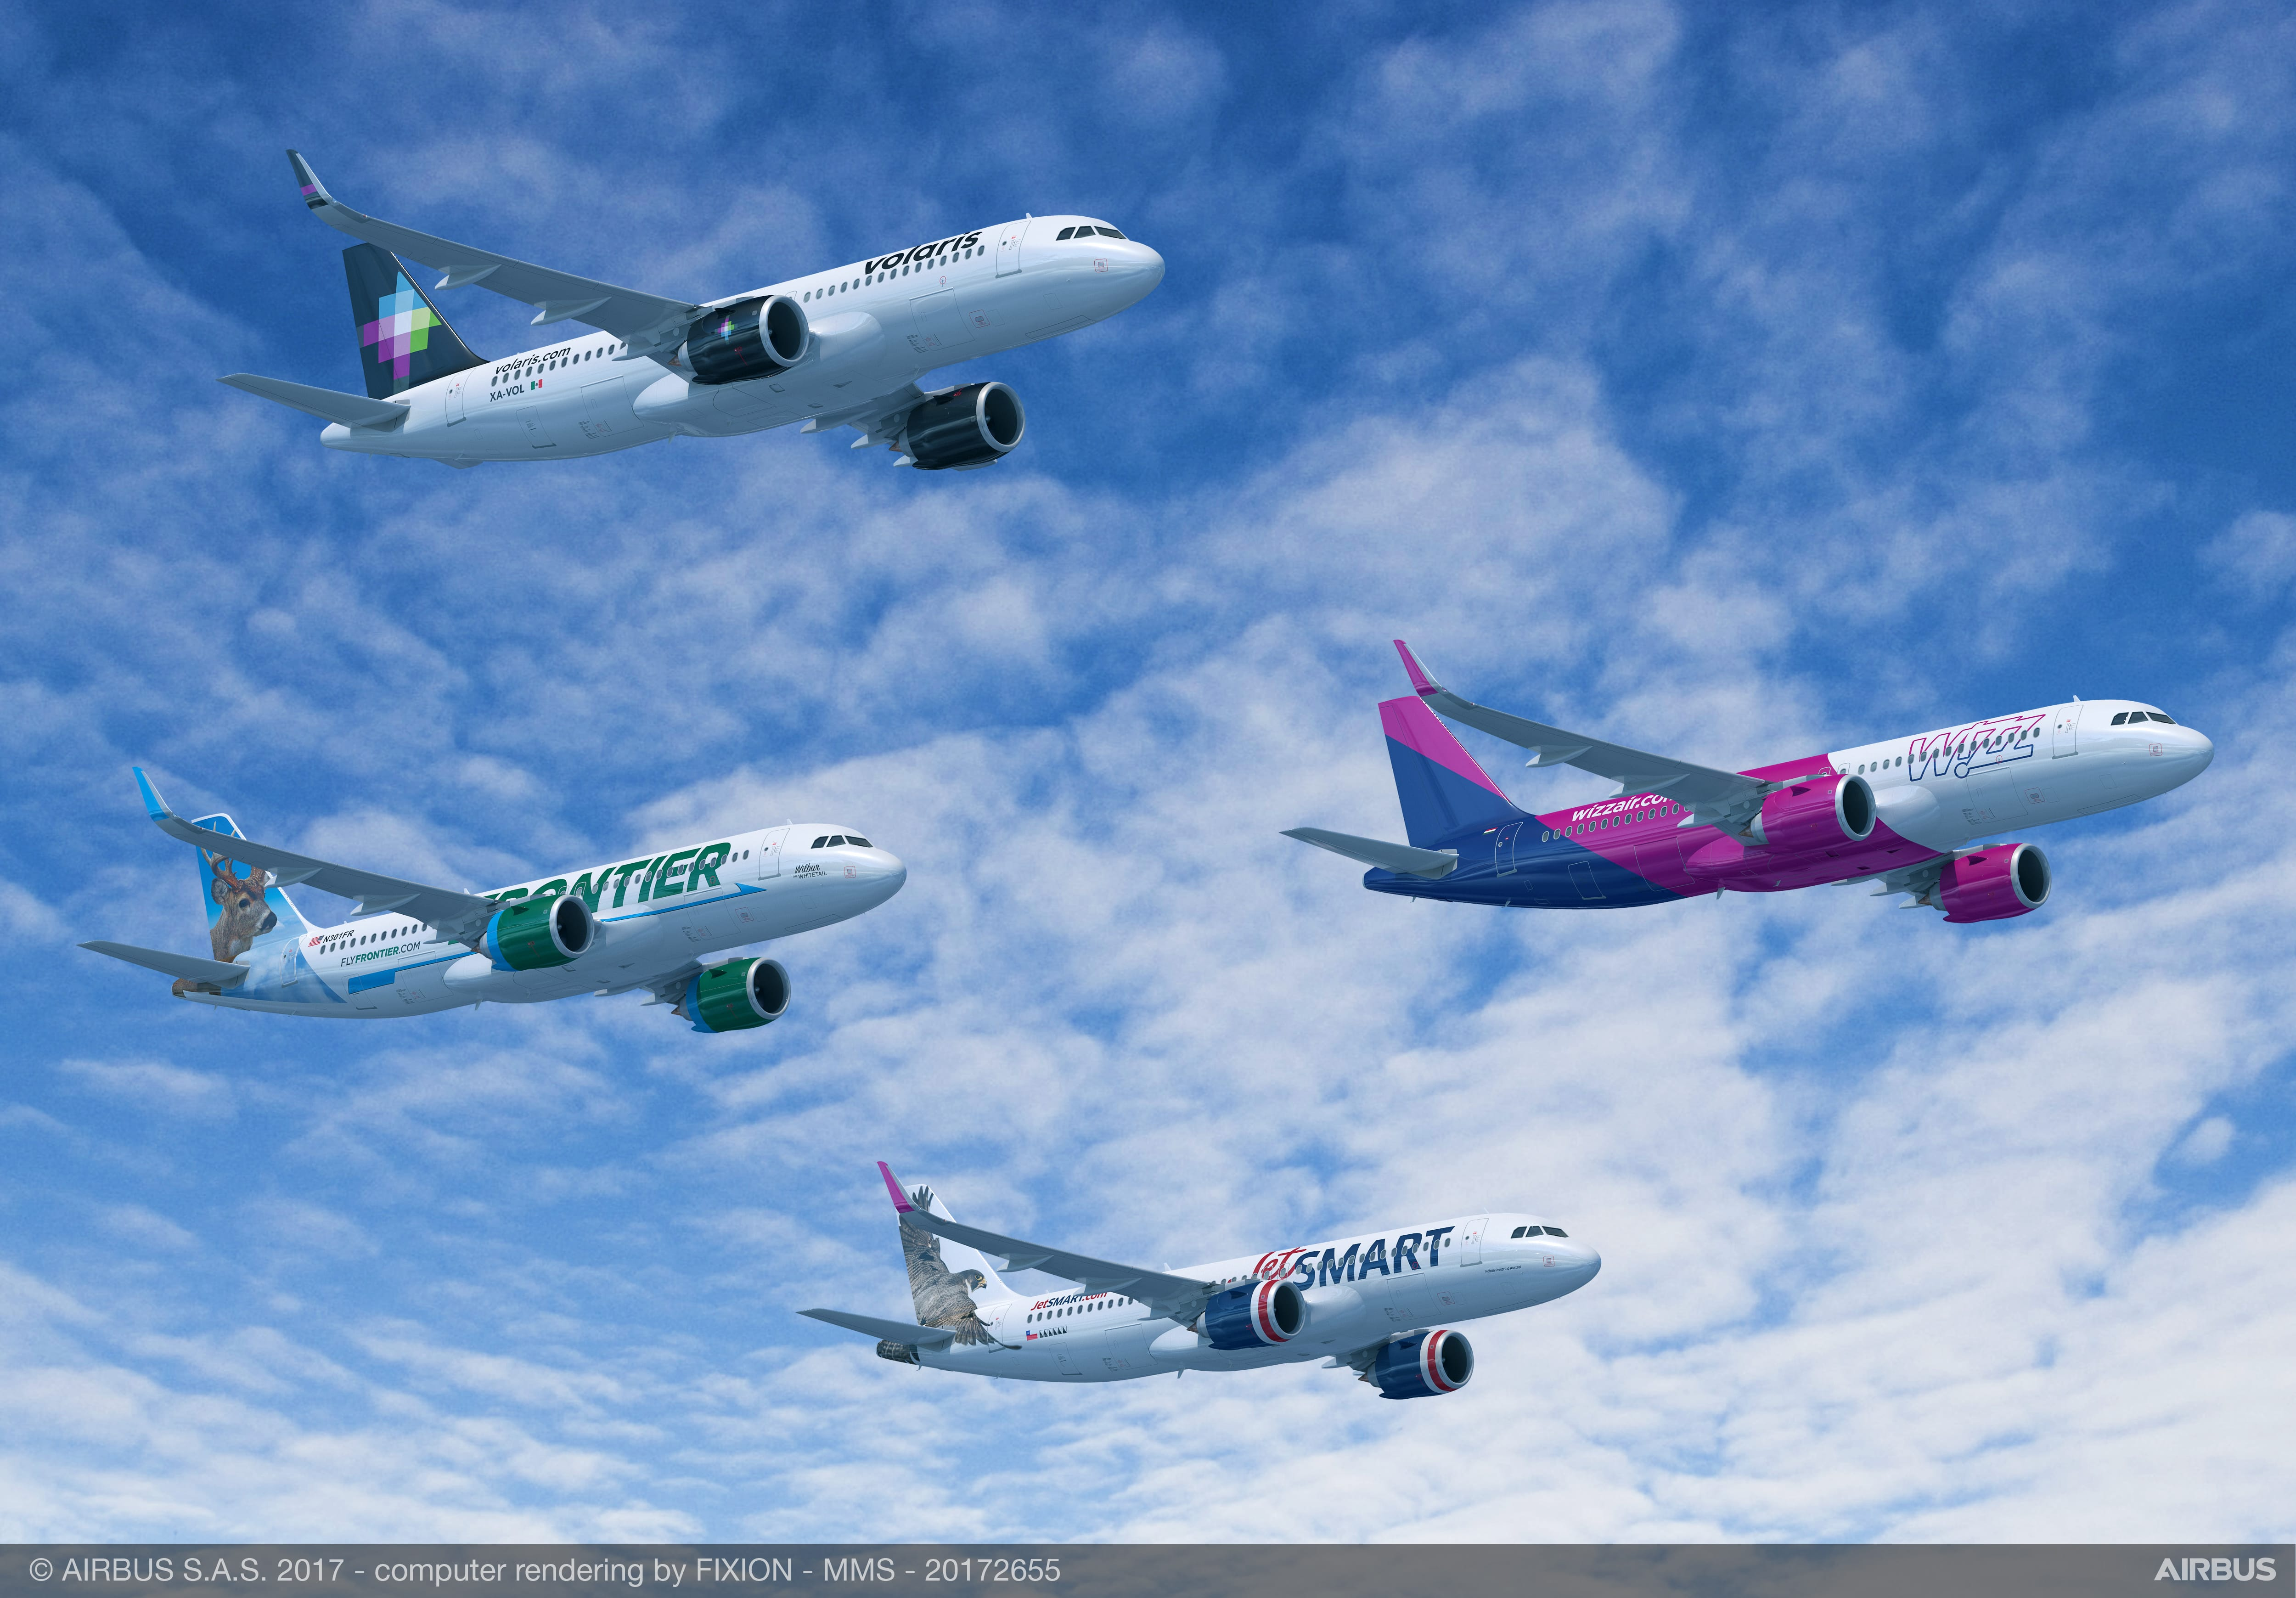 Frontier Airlines Jetsmart Volaris And Wizz Air Indigo Partners Have Signed Biggest Single Airbus Deal Ever With 430 Airbus A320neo Aviation24 Be